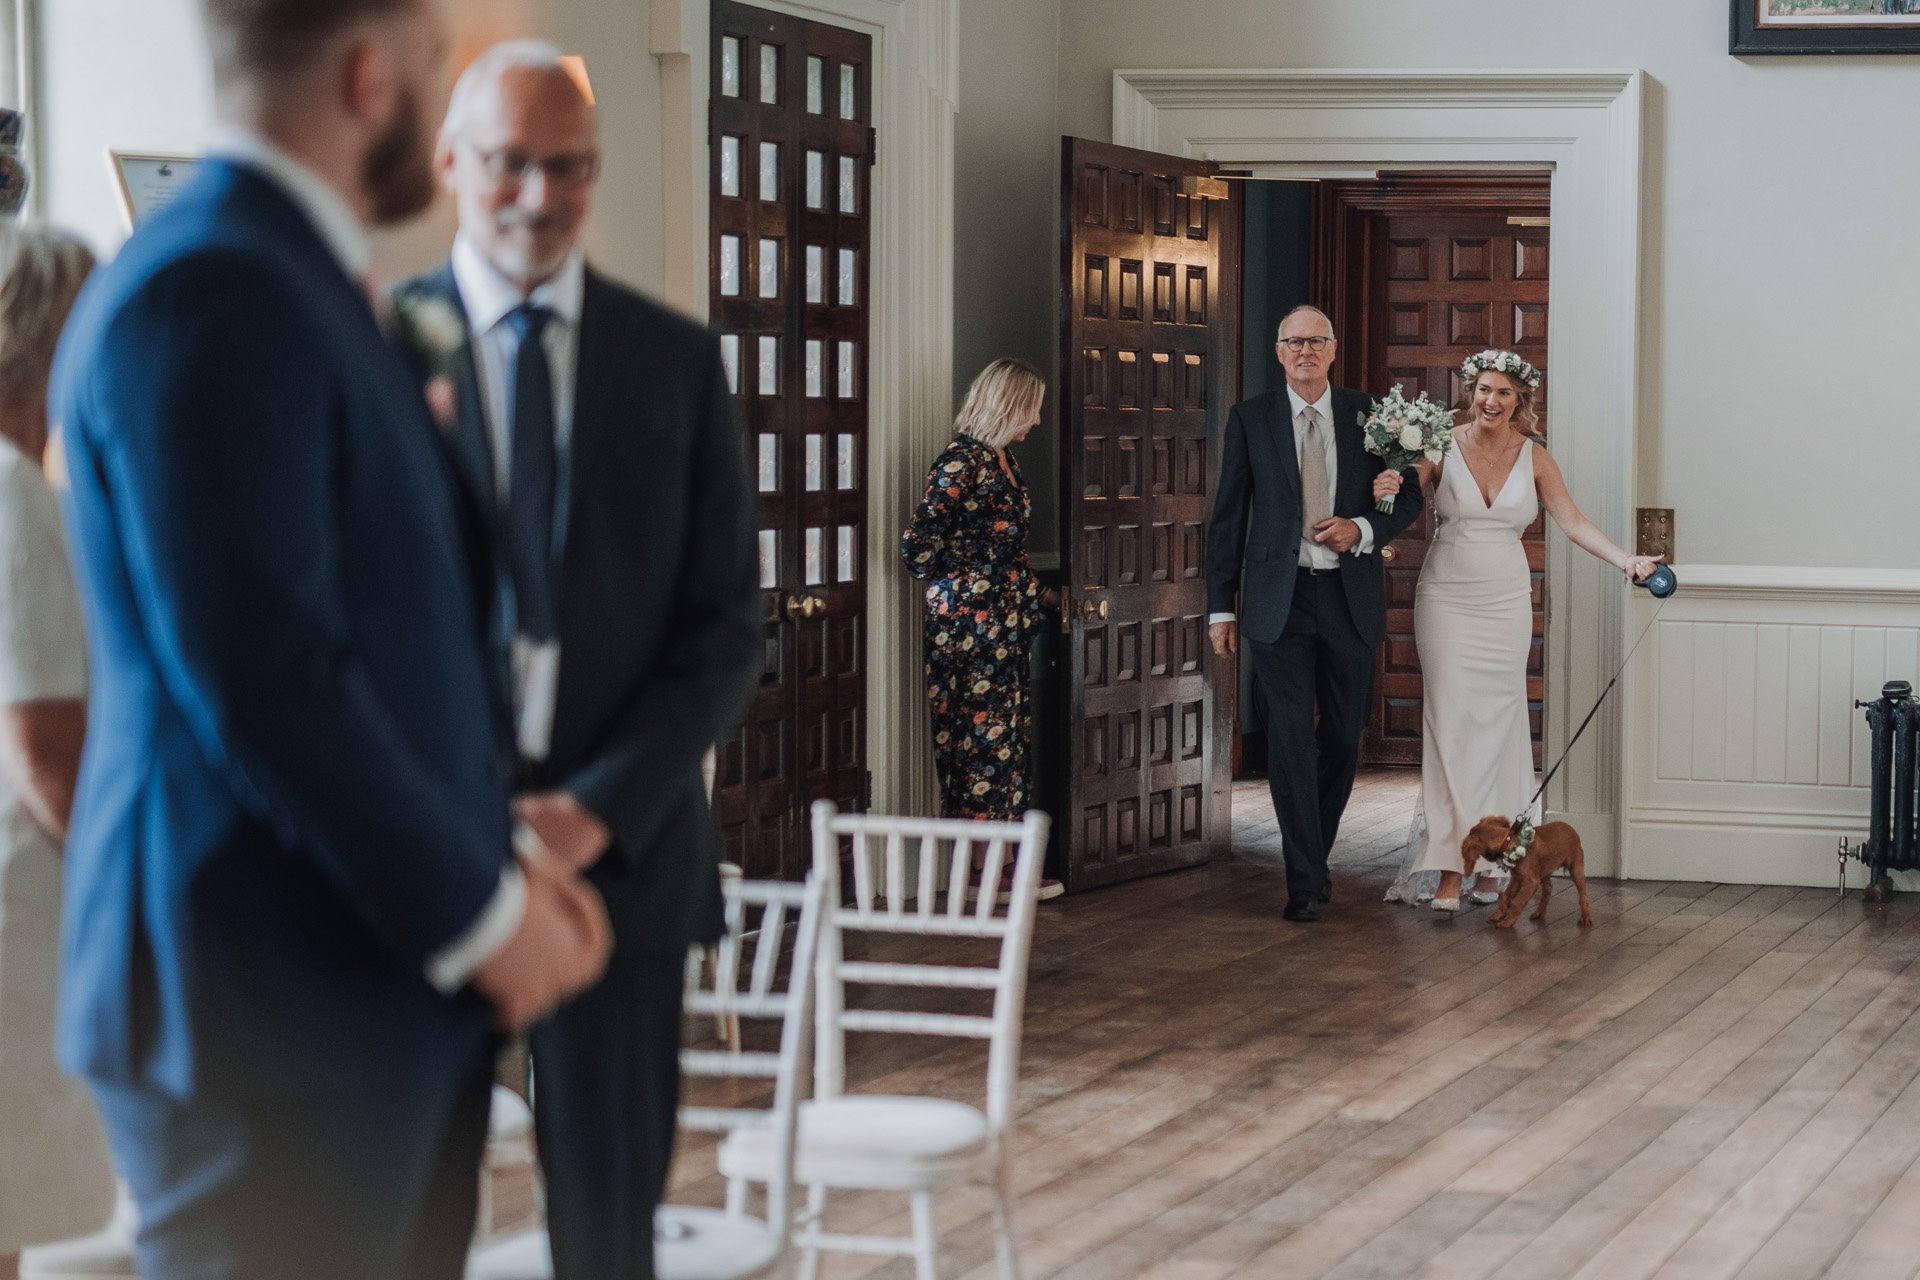 Here comes the bride with puppy bridesmaid wearing flowers at elmore court covid micro wedding